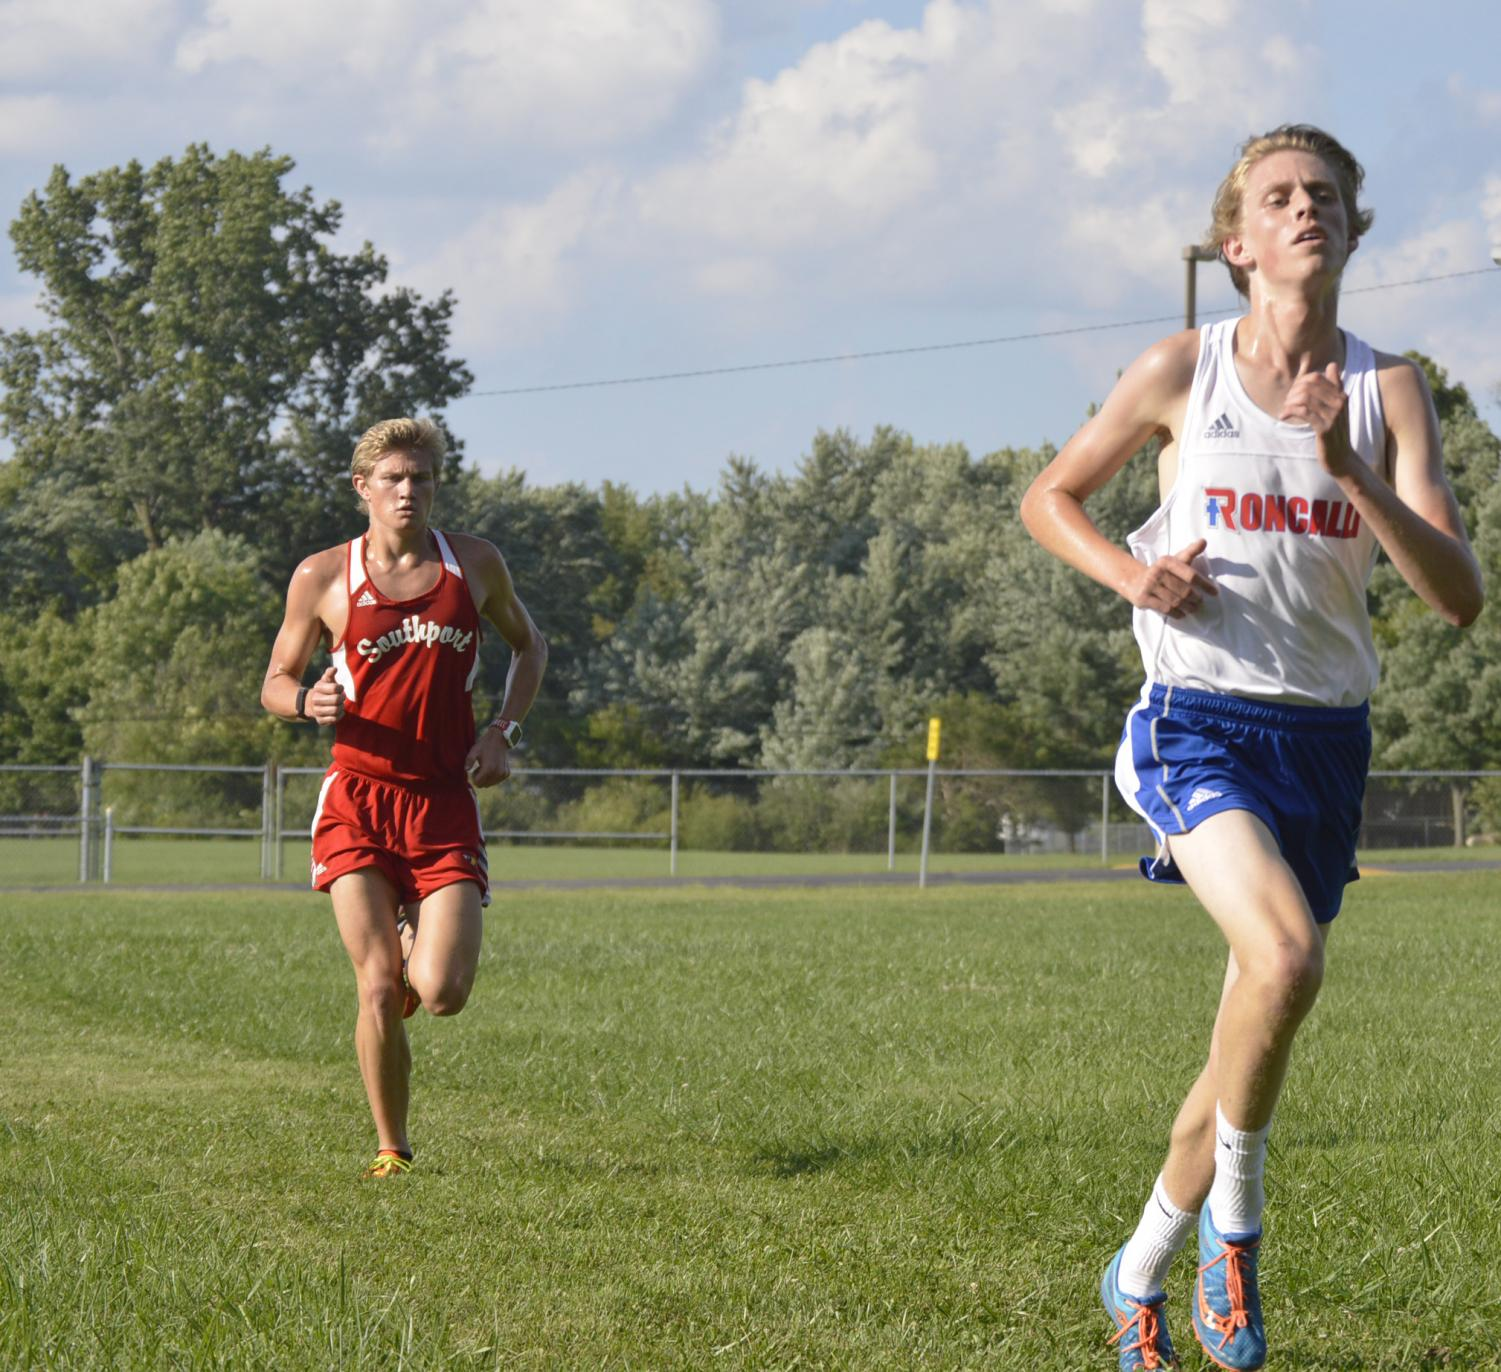 Junior++Drew+Shelinburger+runs+directly+behind+a+Roncalli+opponent.+Shellenbergerr+came+in+second+place+in+the+race.